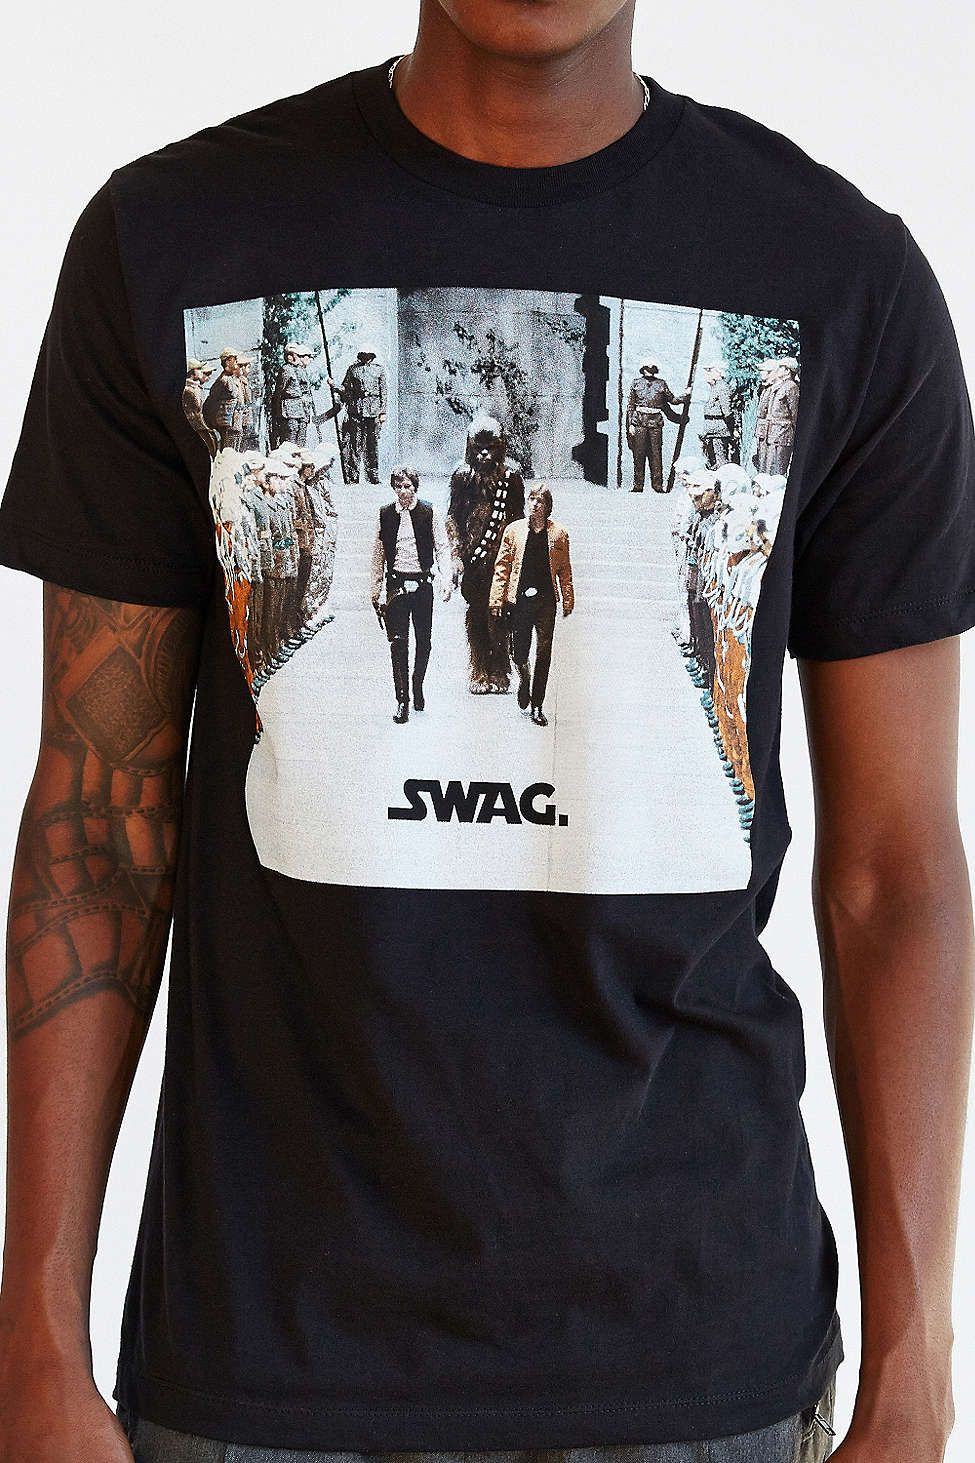 Star Wars Swag Tee Urban Outfitters Swag Tee Urban Outfitters Star Wars Shirts [ 1463 x 975 Pixel ]